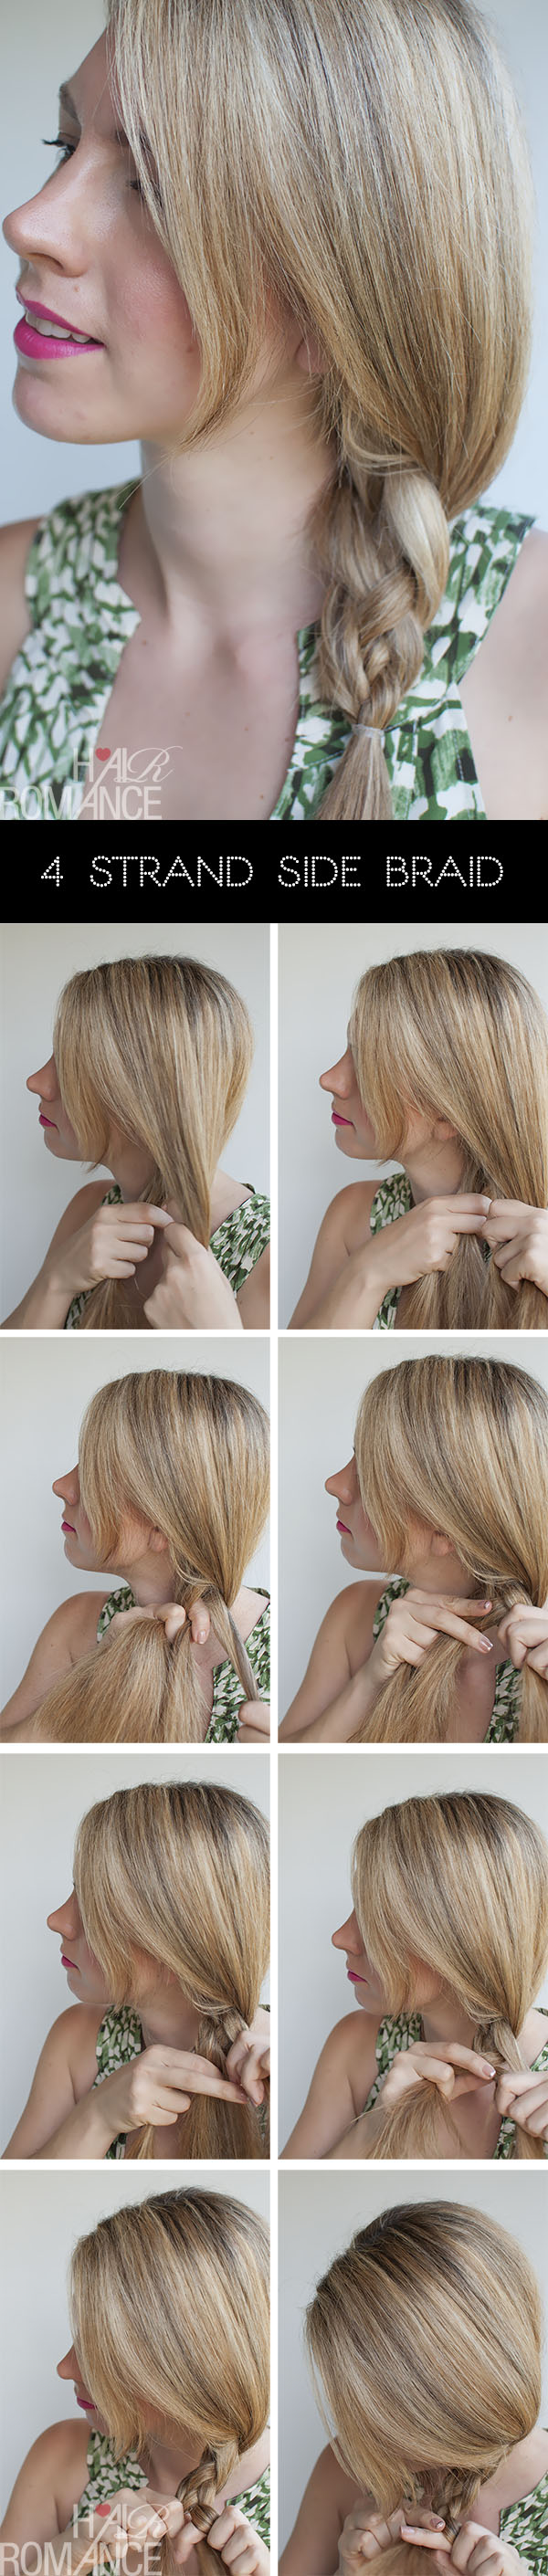 Hair Romance - 4 strand side braid hair tutorial